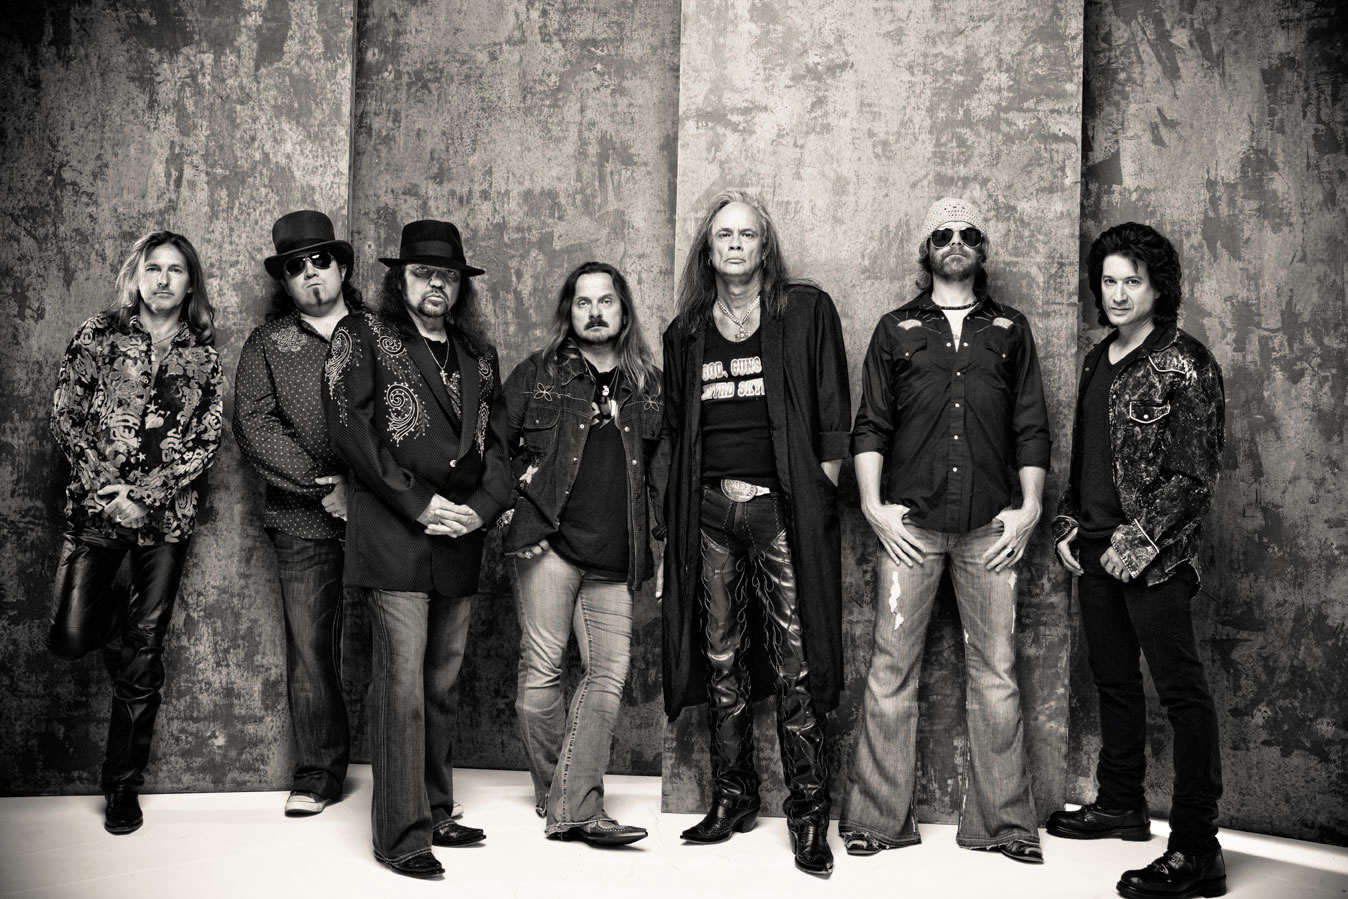 Lynyrd Skynyrd - Sweet Home Alabama / Saturday Night Special